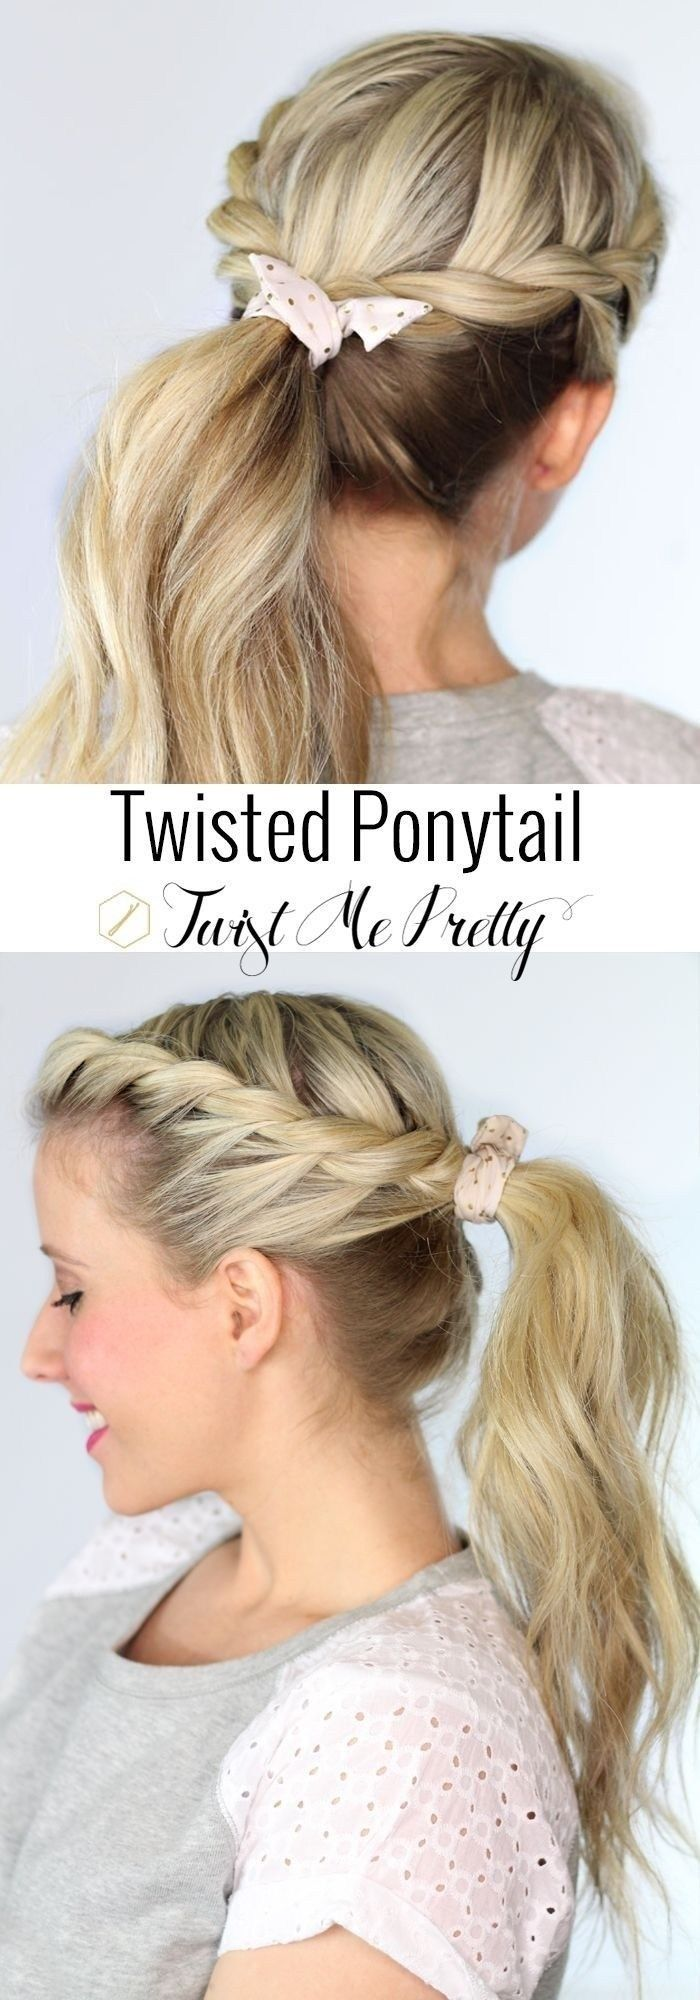 Lazy day hairstyles hair pinterest twist ponytail ponytail